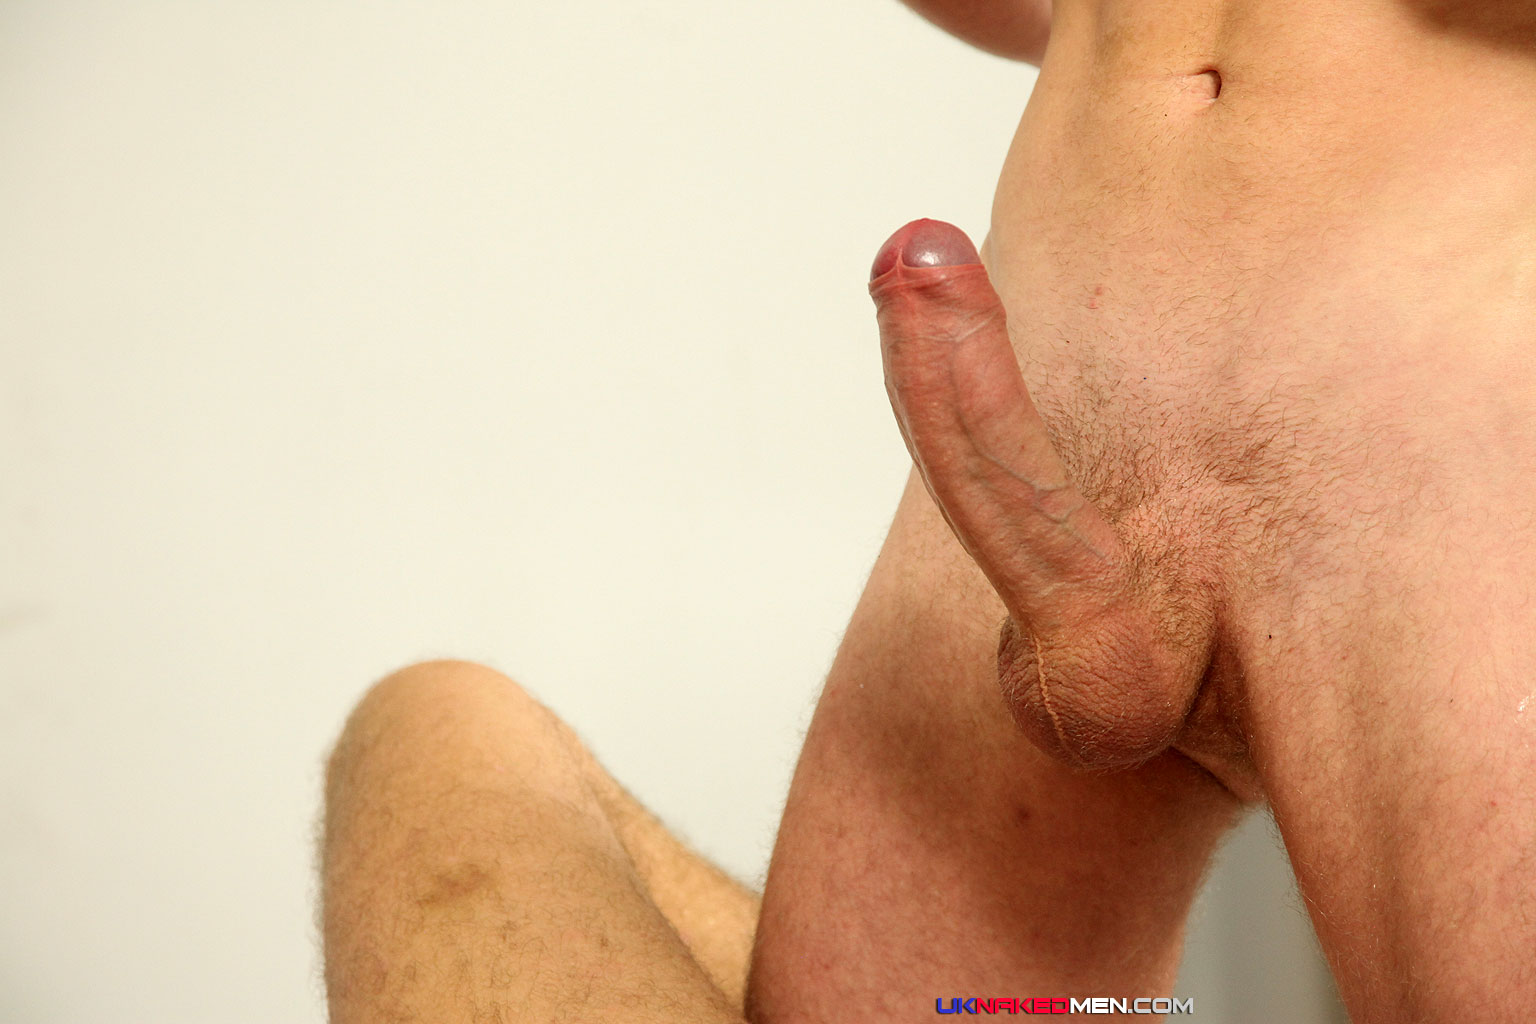 UK Naked Men Tailor Scott and Hugo Mex Huge Uncut Cocks Fucking 16 Amateur Boyfriends With Massive Uncut Cocks Fucking At Work